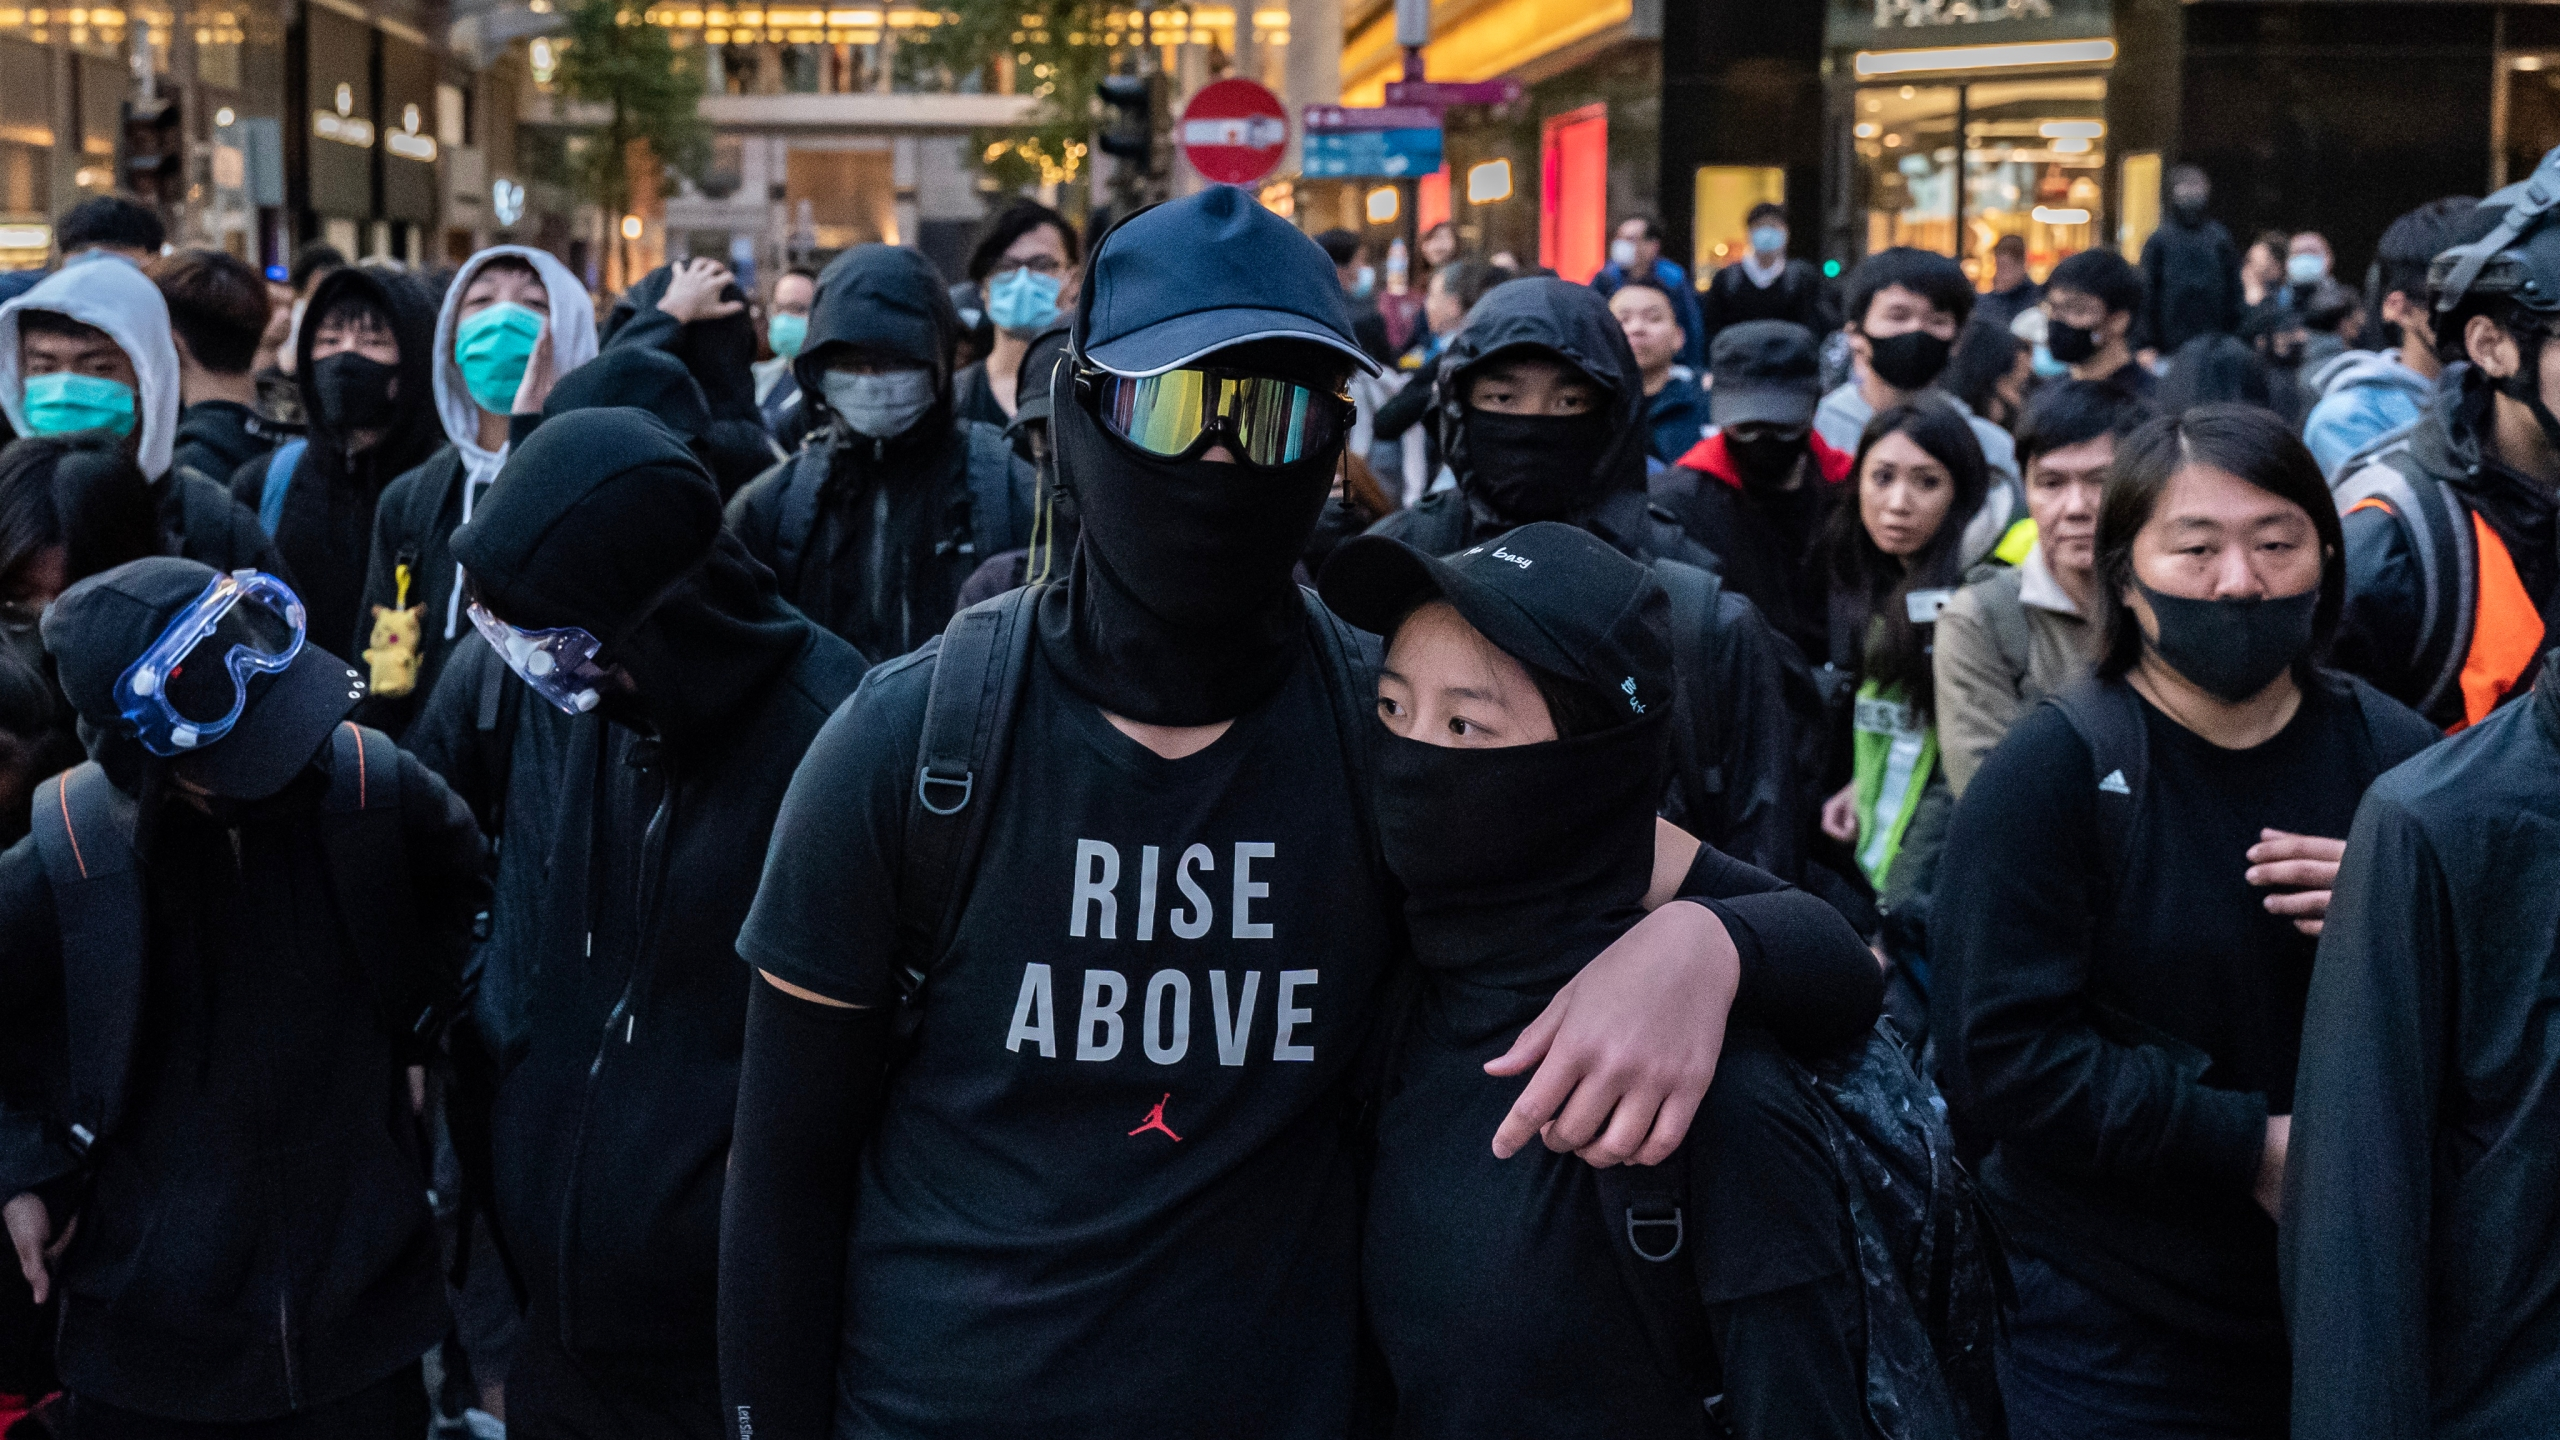 Protesters form a frontline during a standoff with police at a demonstration on Dec. 8, 2019, in Hong Kong, China. (Credit: Anthony Kwan/Getty Images)